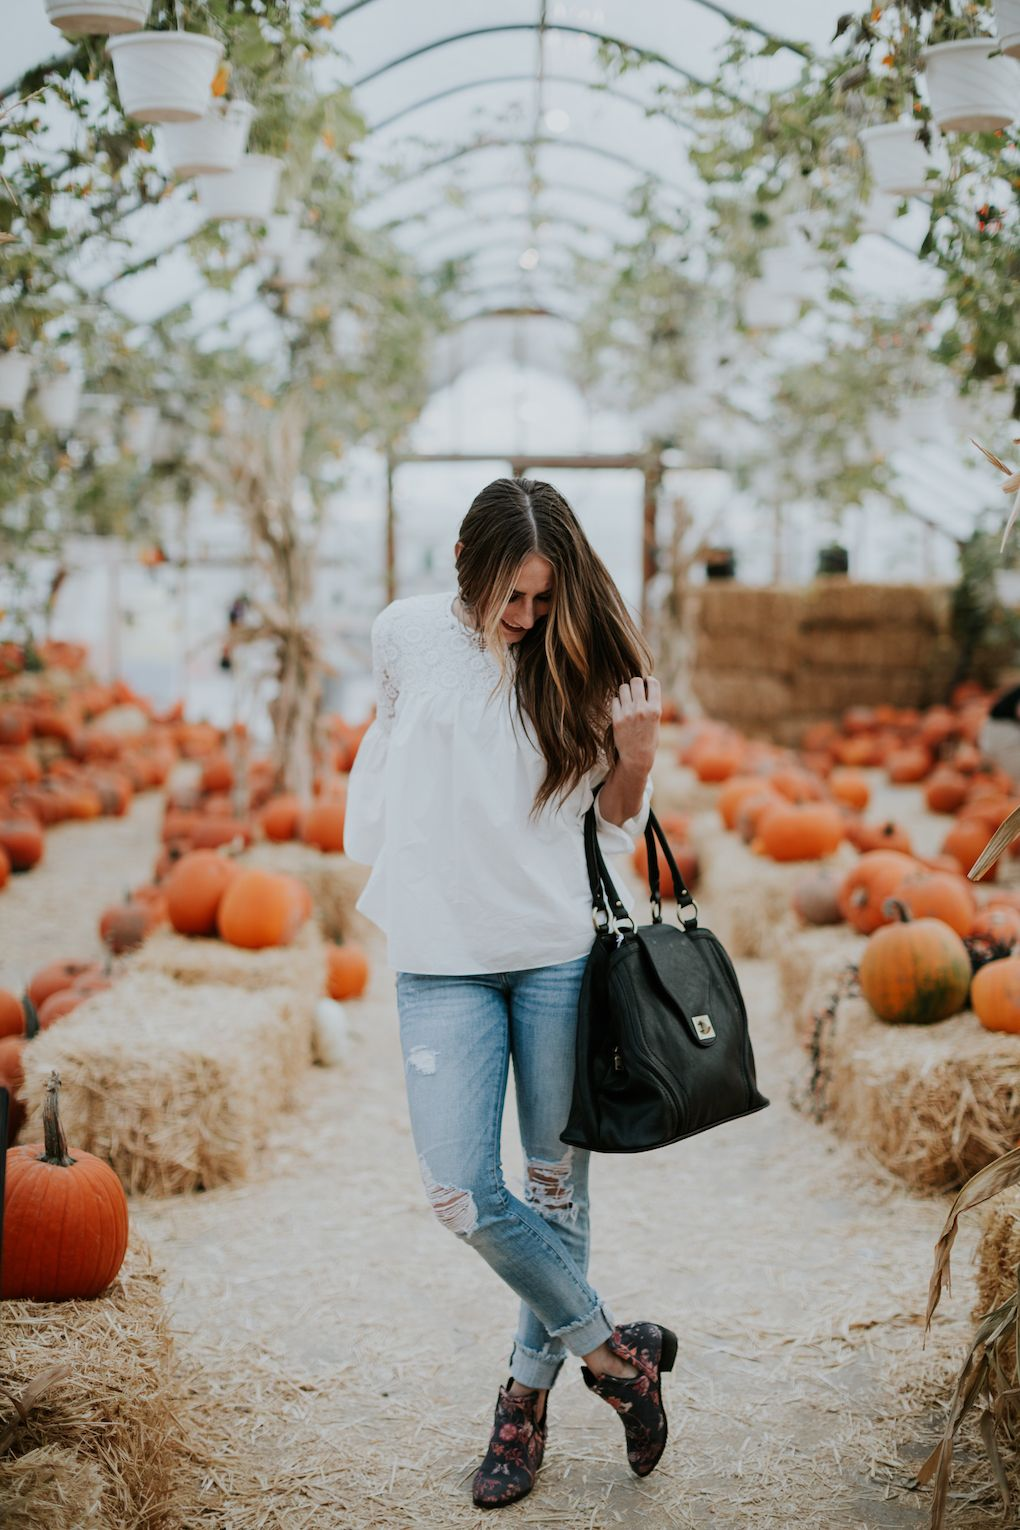 cdb182f529 girl wearing white lace top with distressed denim and brown booties  standing in a pumpkin patch